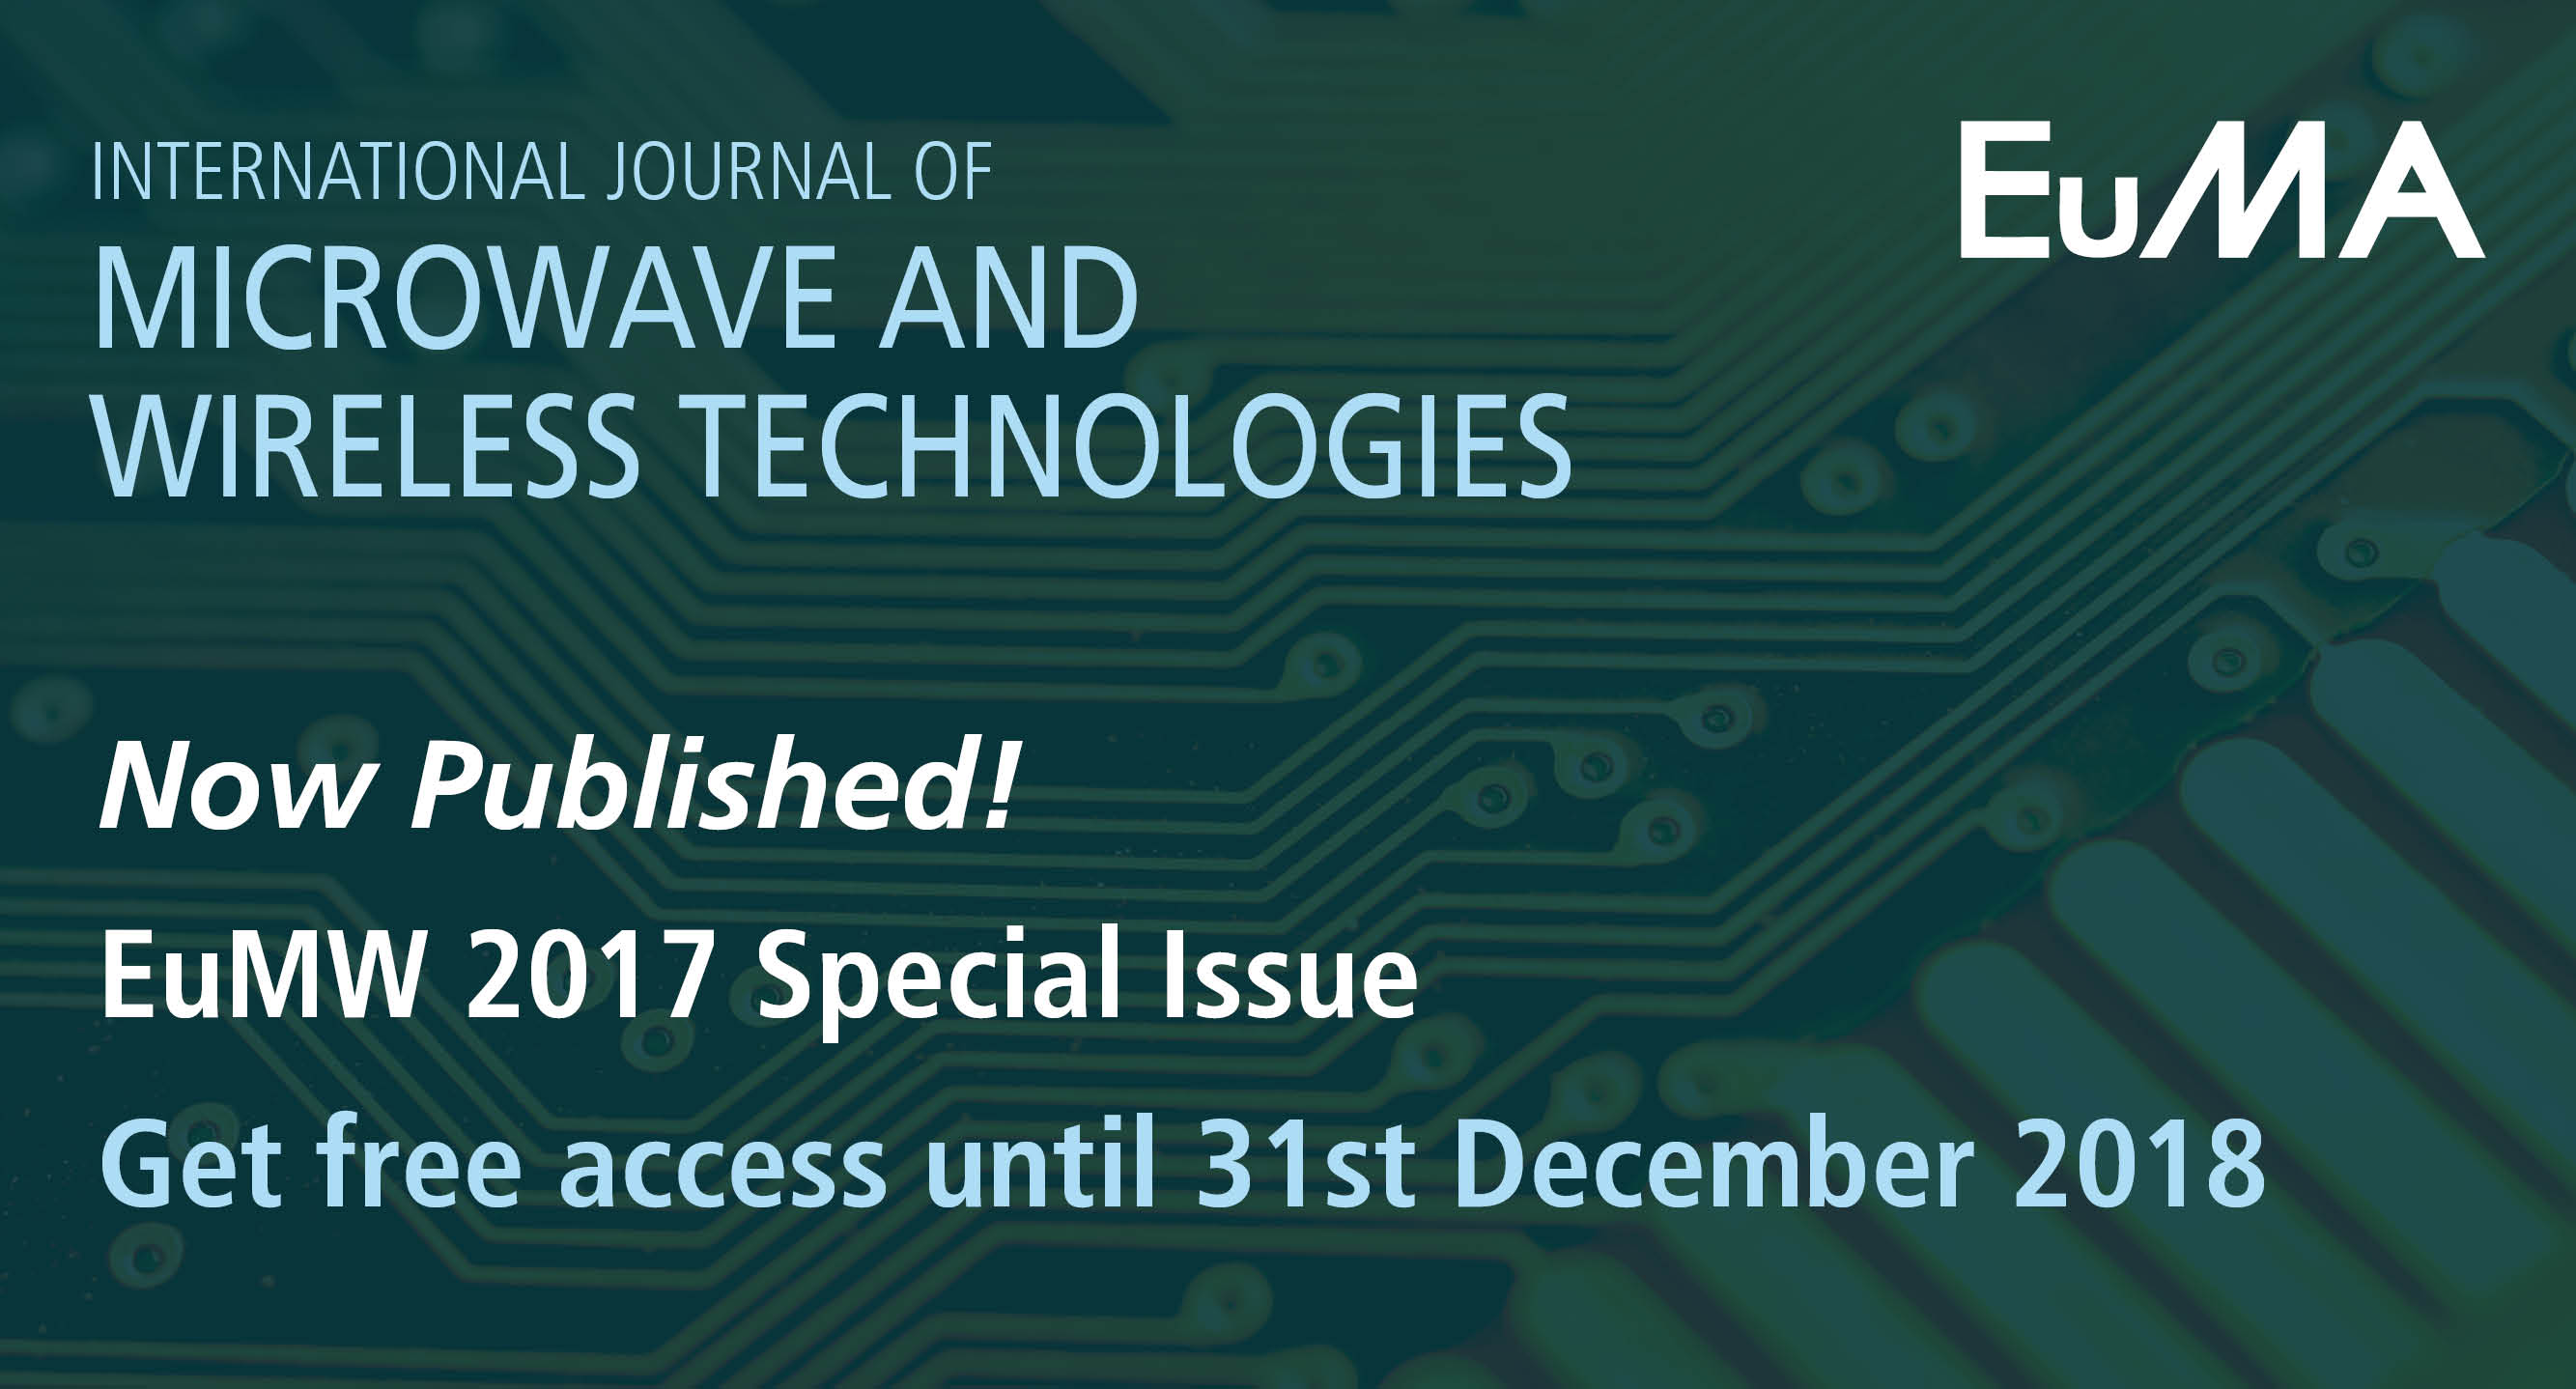 EuMW 2017 Special Issue